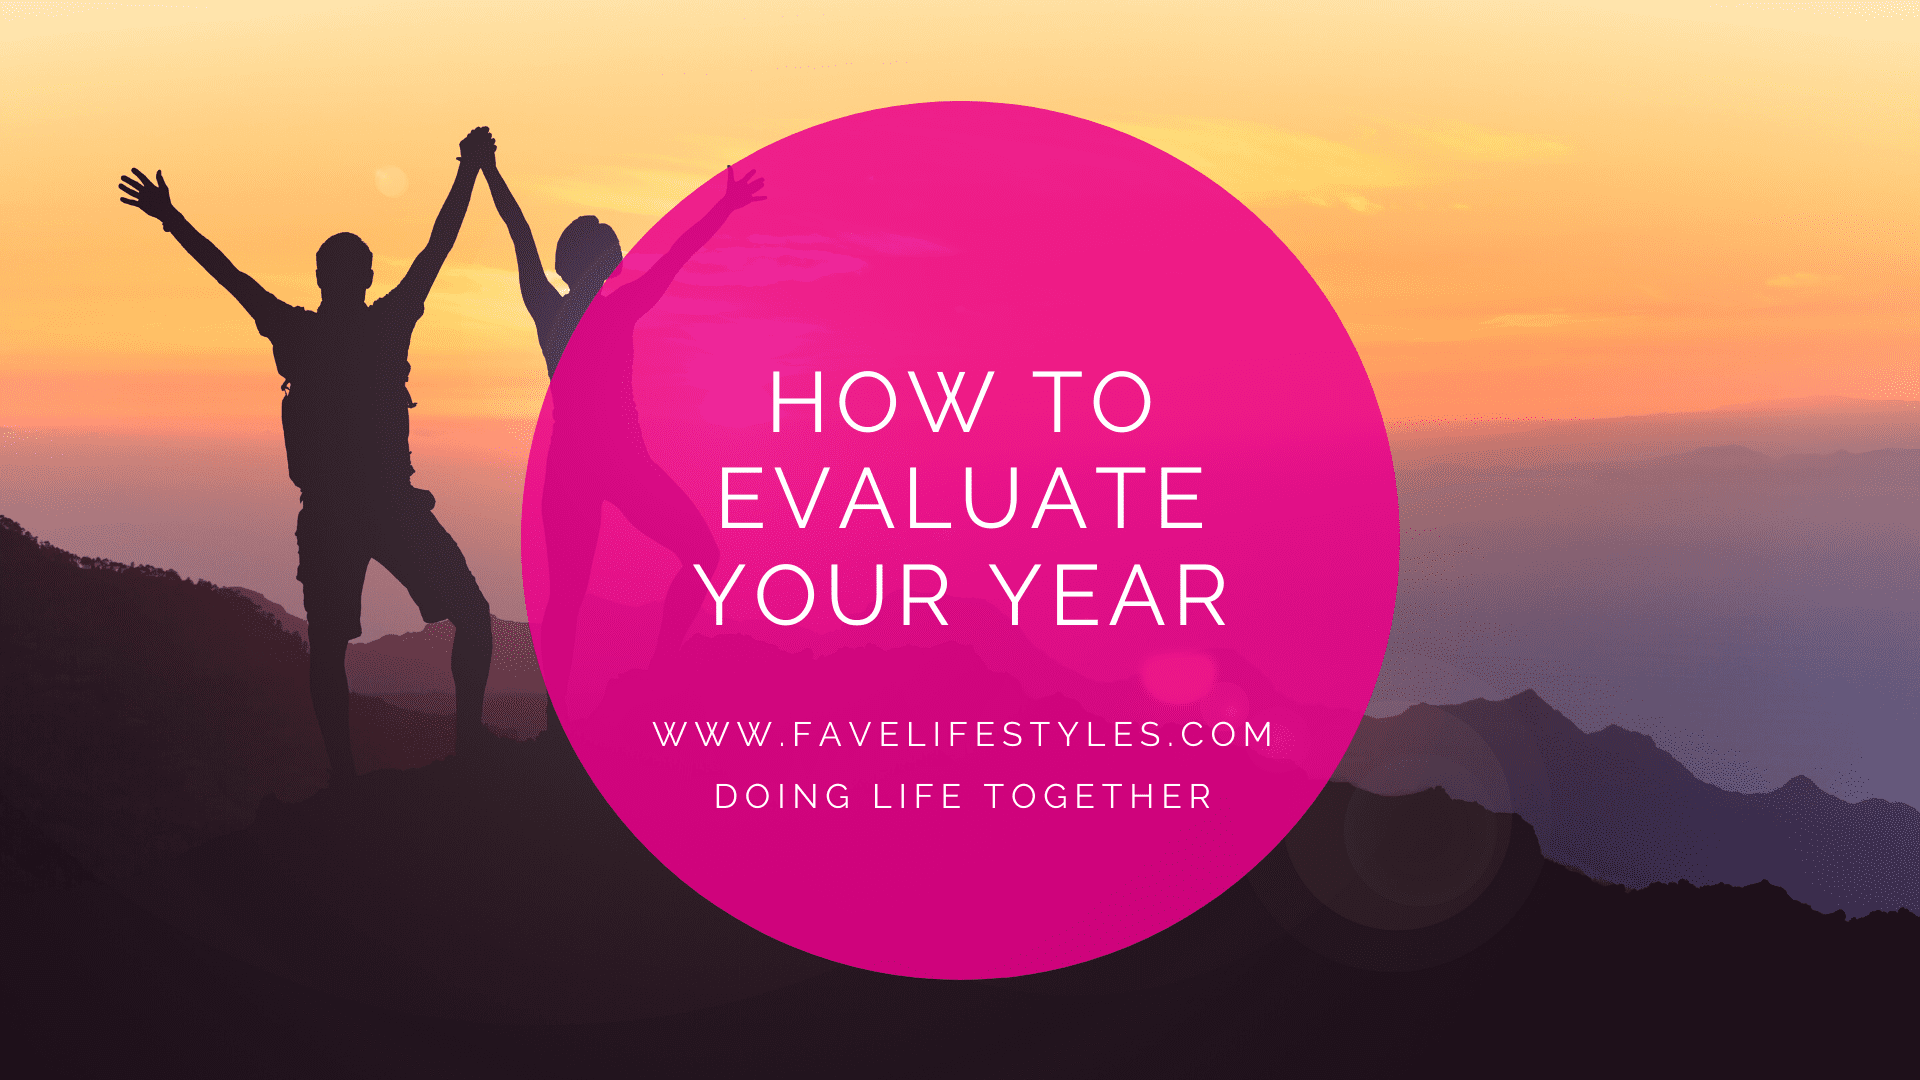 How To Evaluate Your Year